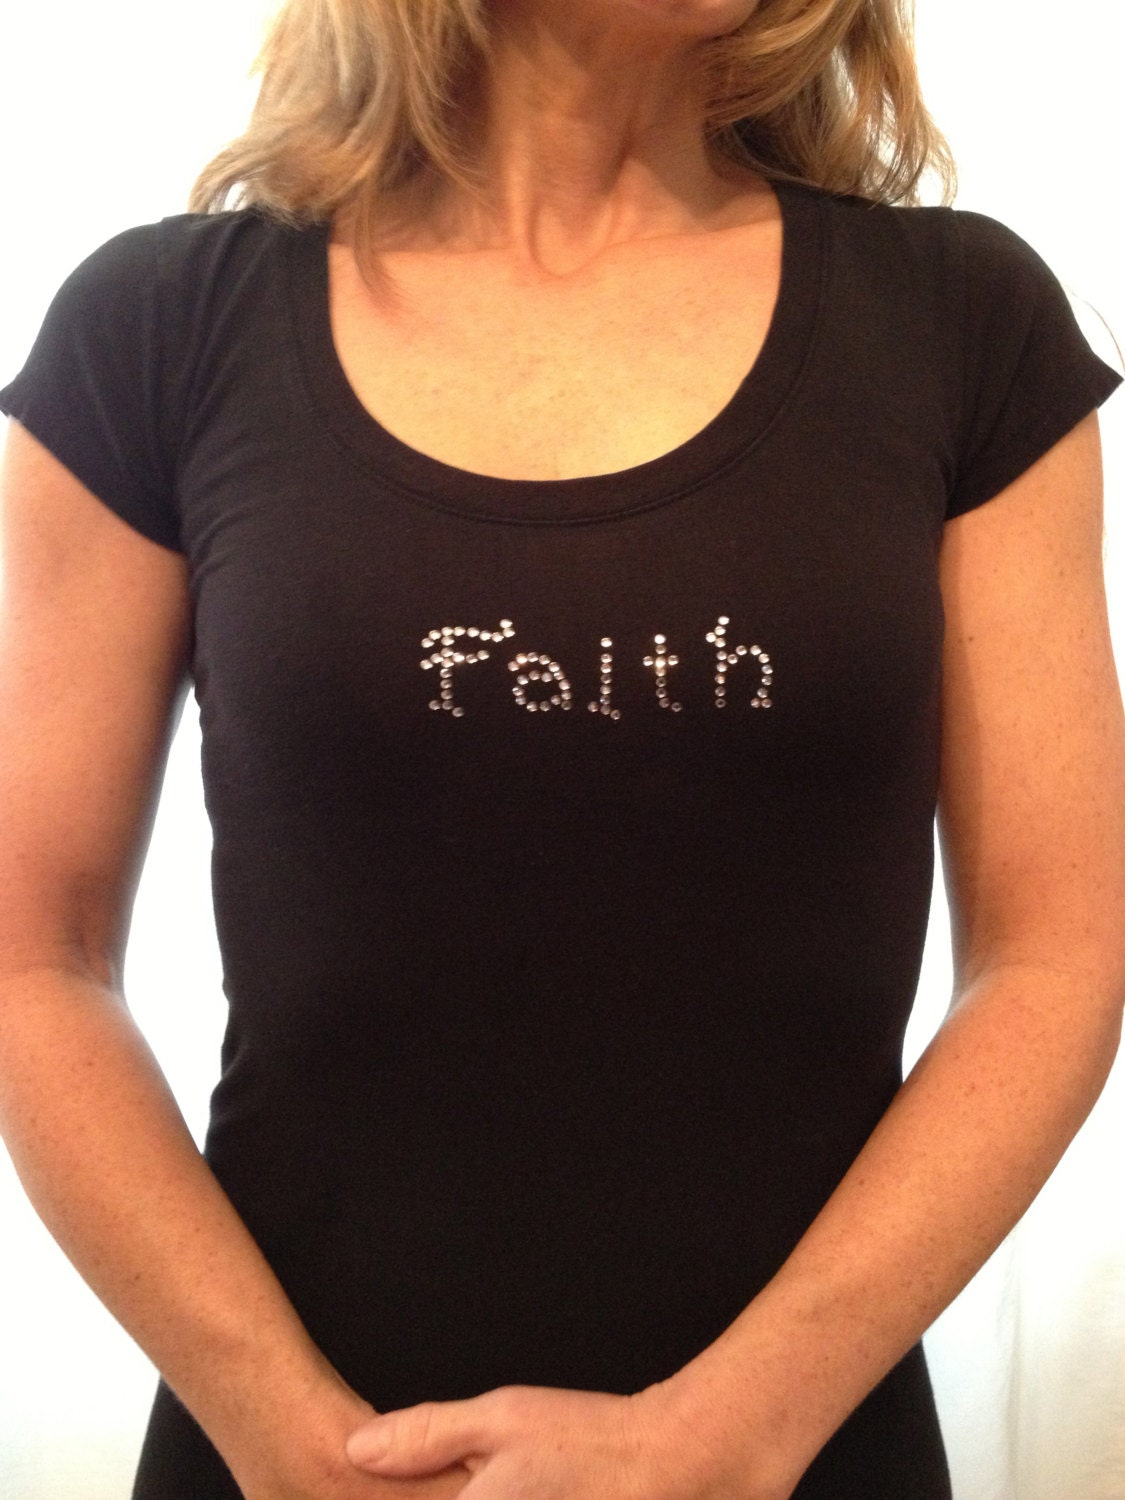 custom t shirt faith shirt rhinestone tee by faithhopeinspire. Black Bedroom Furniture Sets. Home Design Ideas